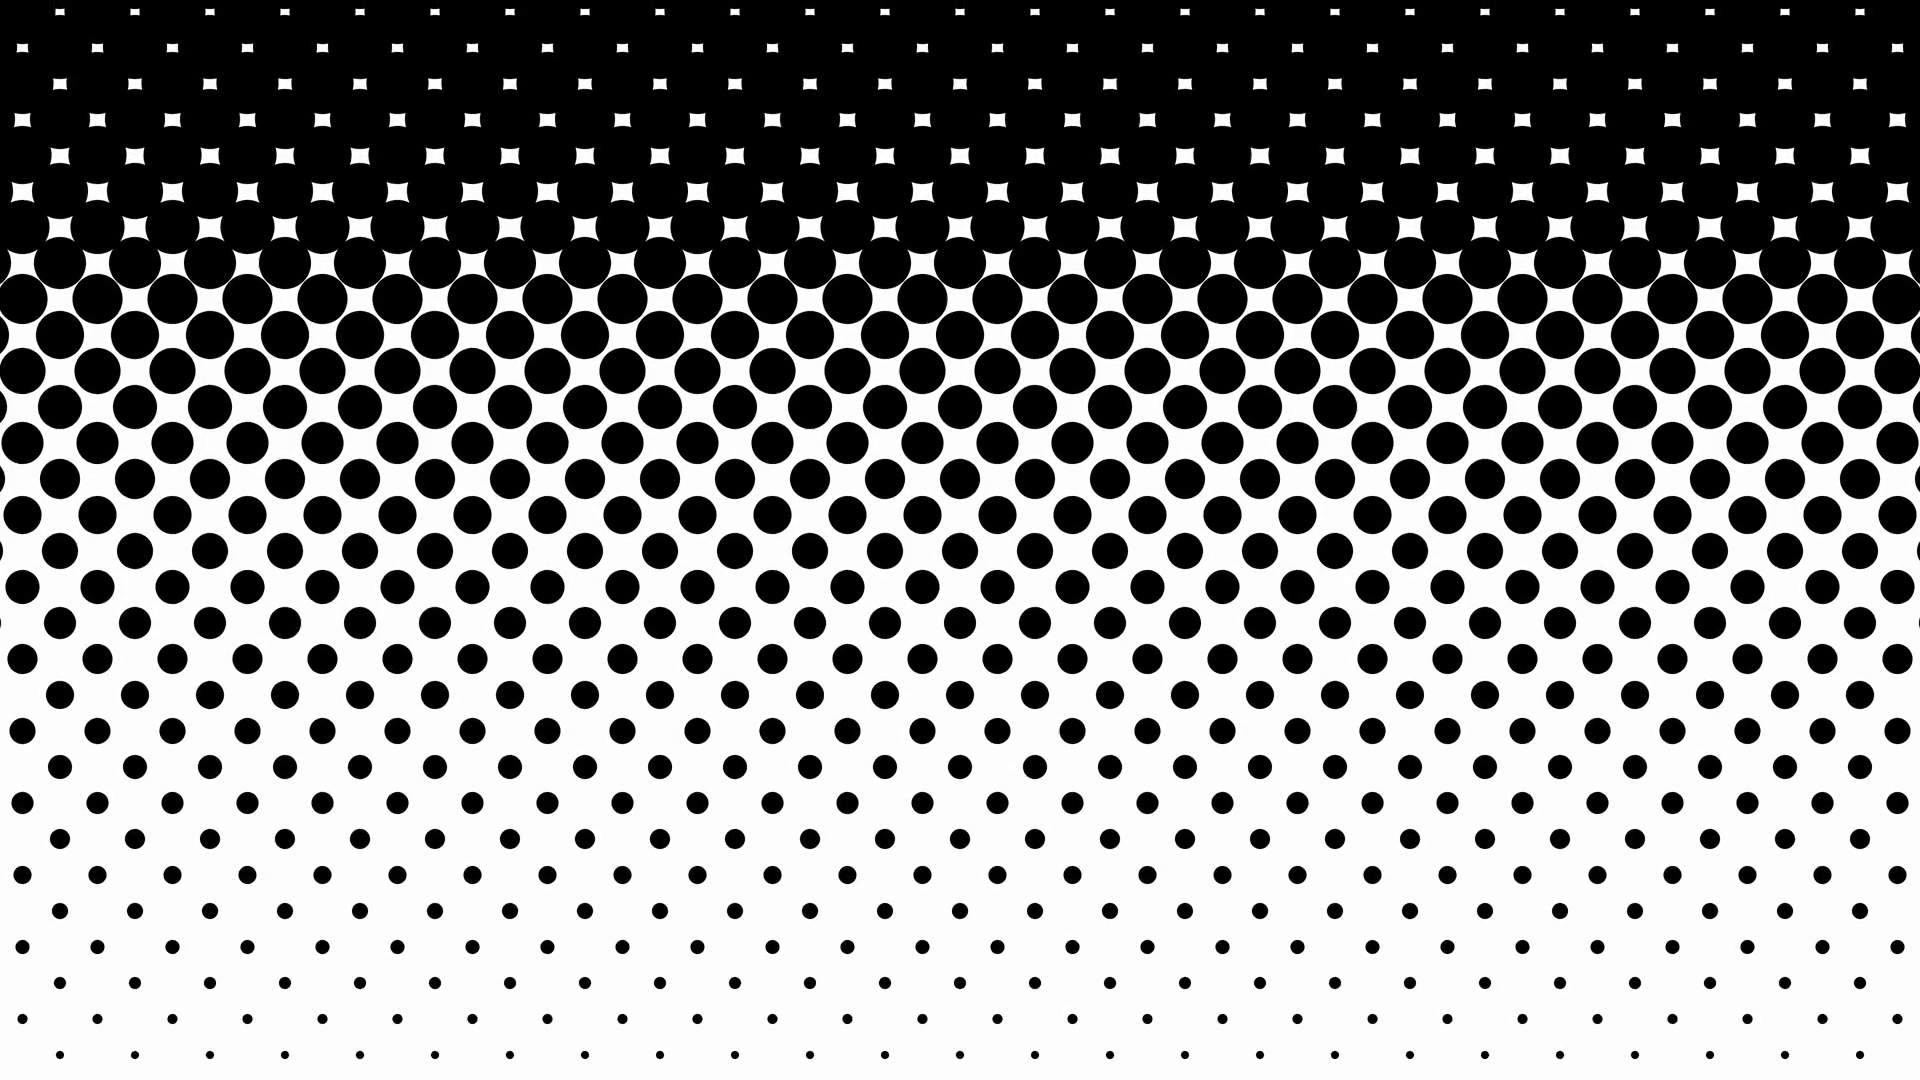 Halftone dots png 2 » PNG Image